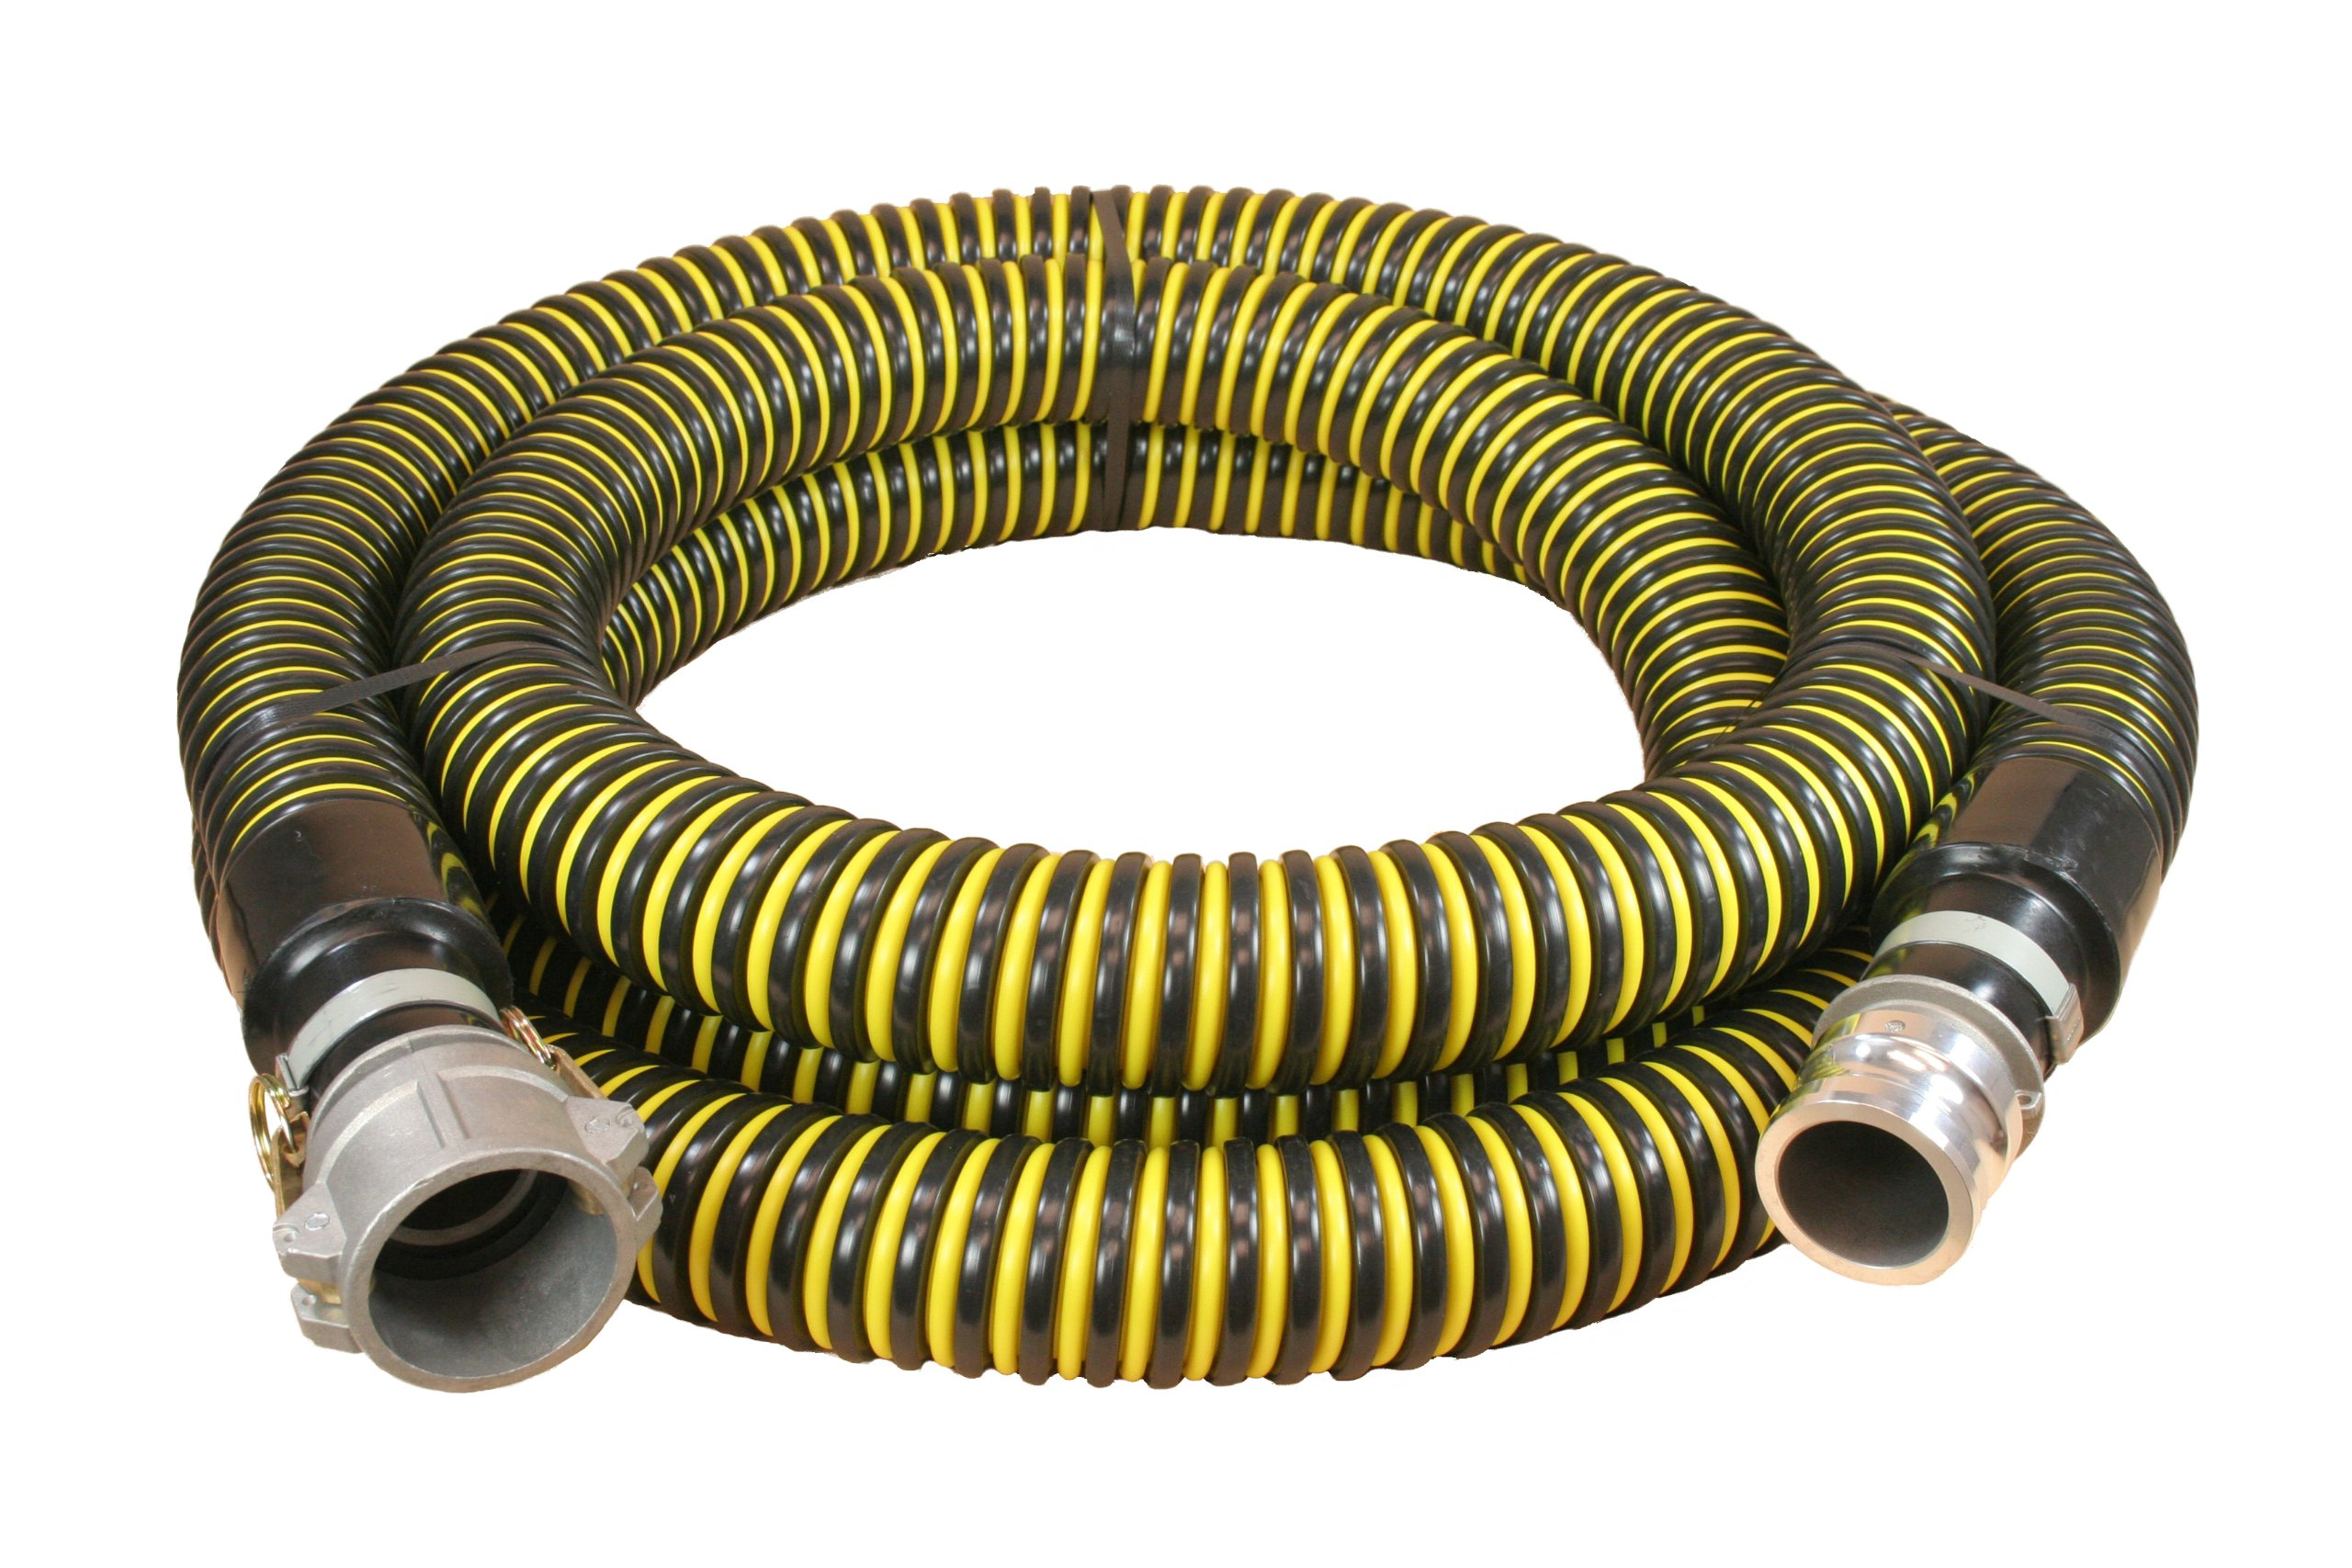 Plastiflex Plastic HI-VAC Suction Hose Assembly, Yellow/Black, 2'' Male X Female Cam and Groove, 15 psi Max Pressure, 20' Length, 2'' ID by Abbott Rubber